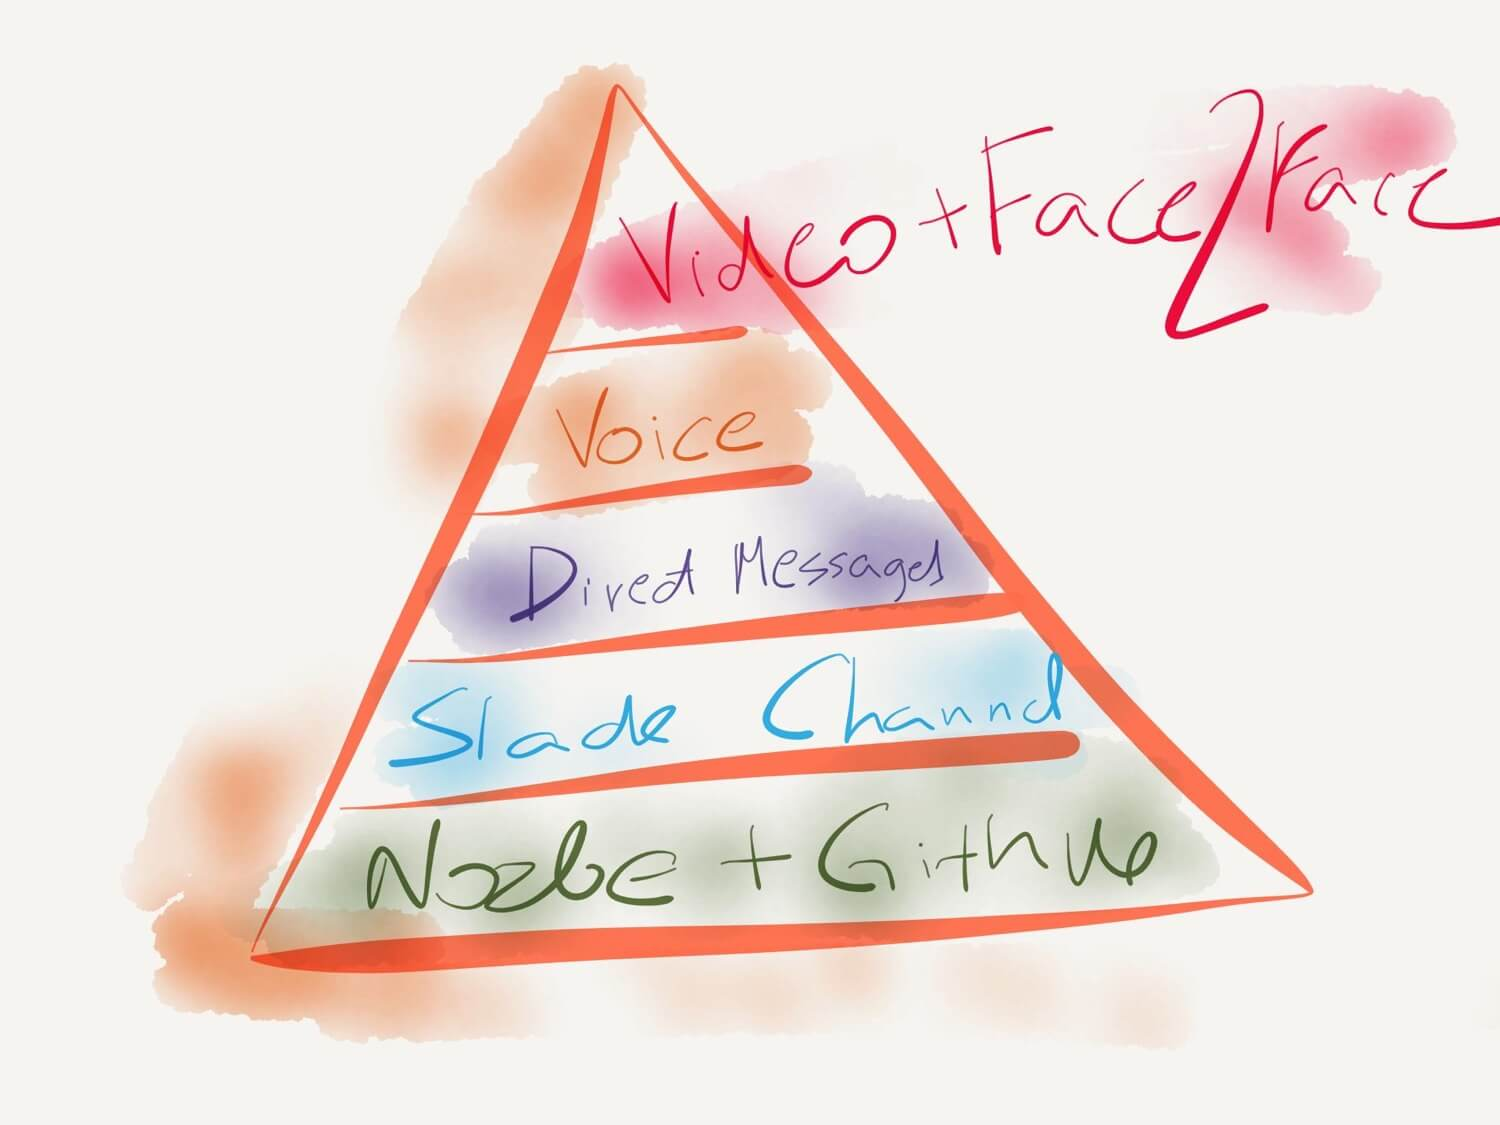 pyramid of communication